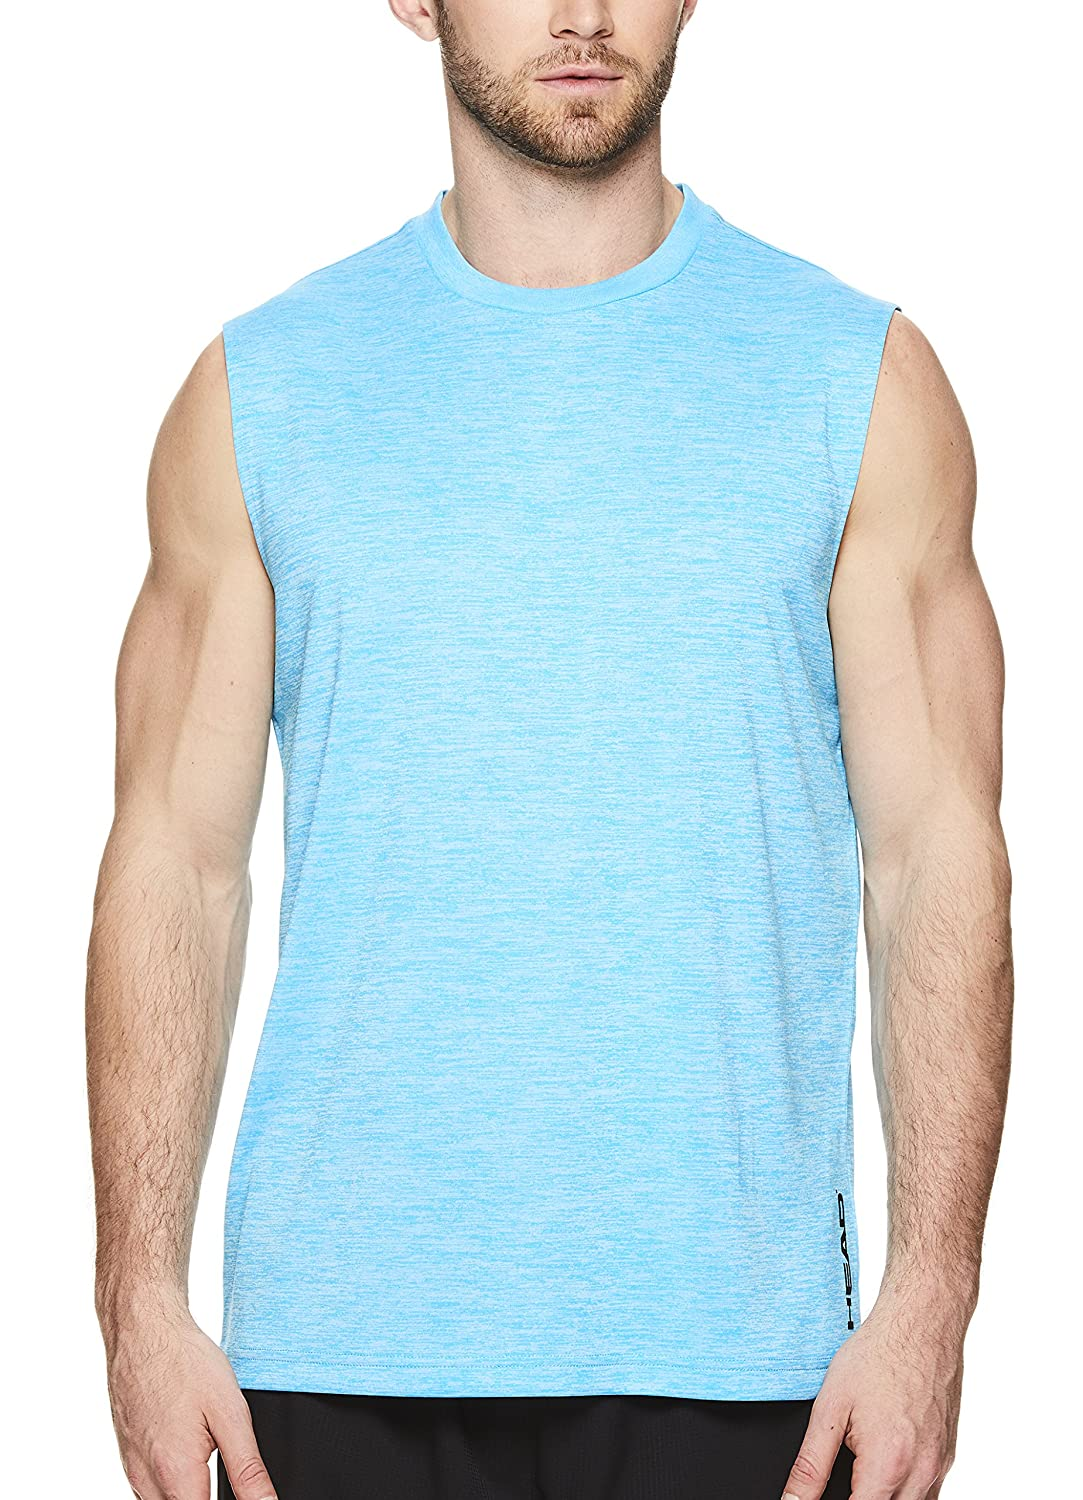 3c7ca1700fc PERFORM TO YOUR POTENTIAL  HEAD tanks set the new bar for gym shirts. Our  performance tank tops are perfect for nearly any physical activity